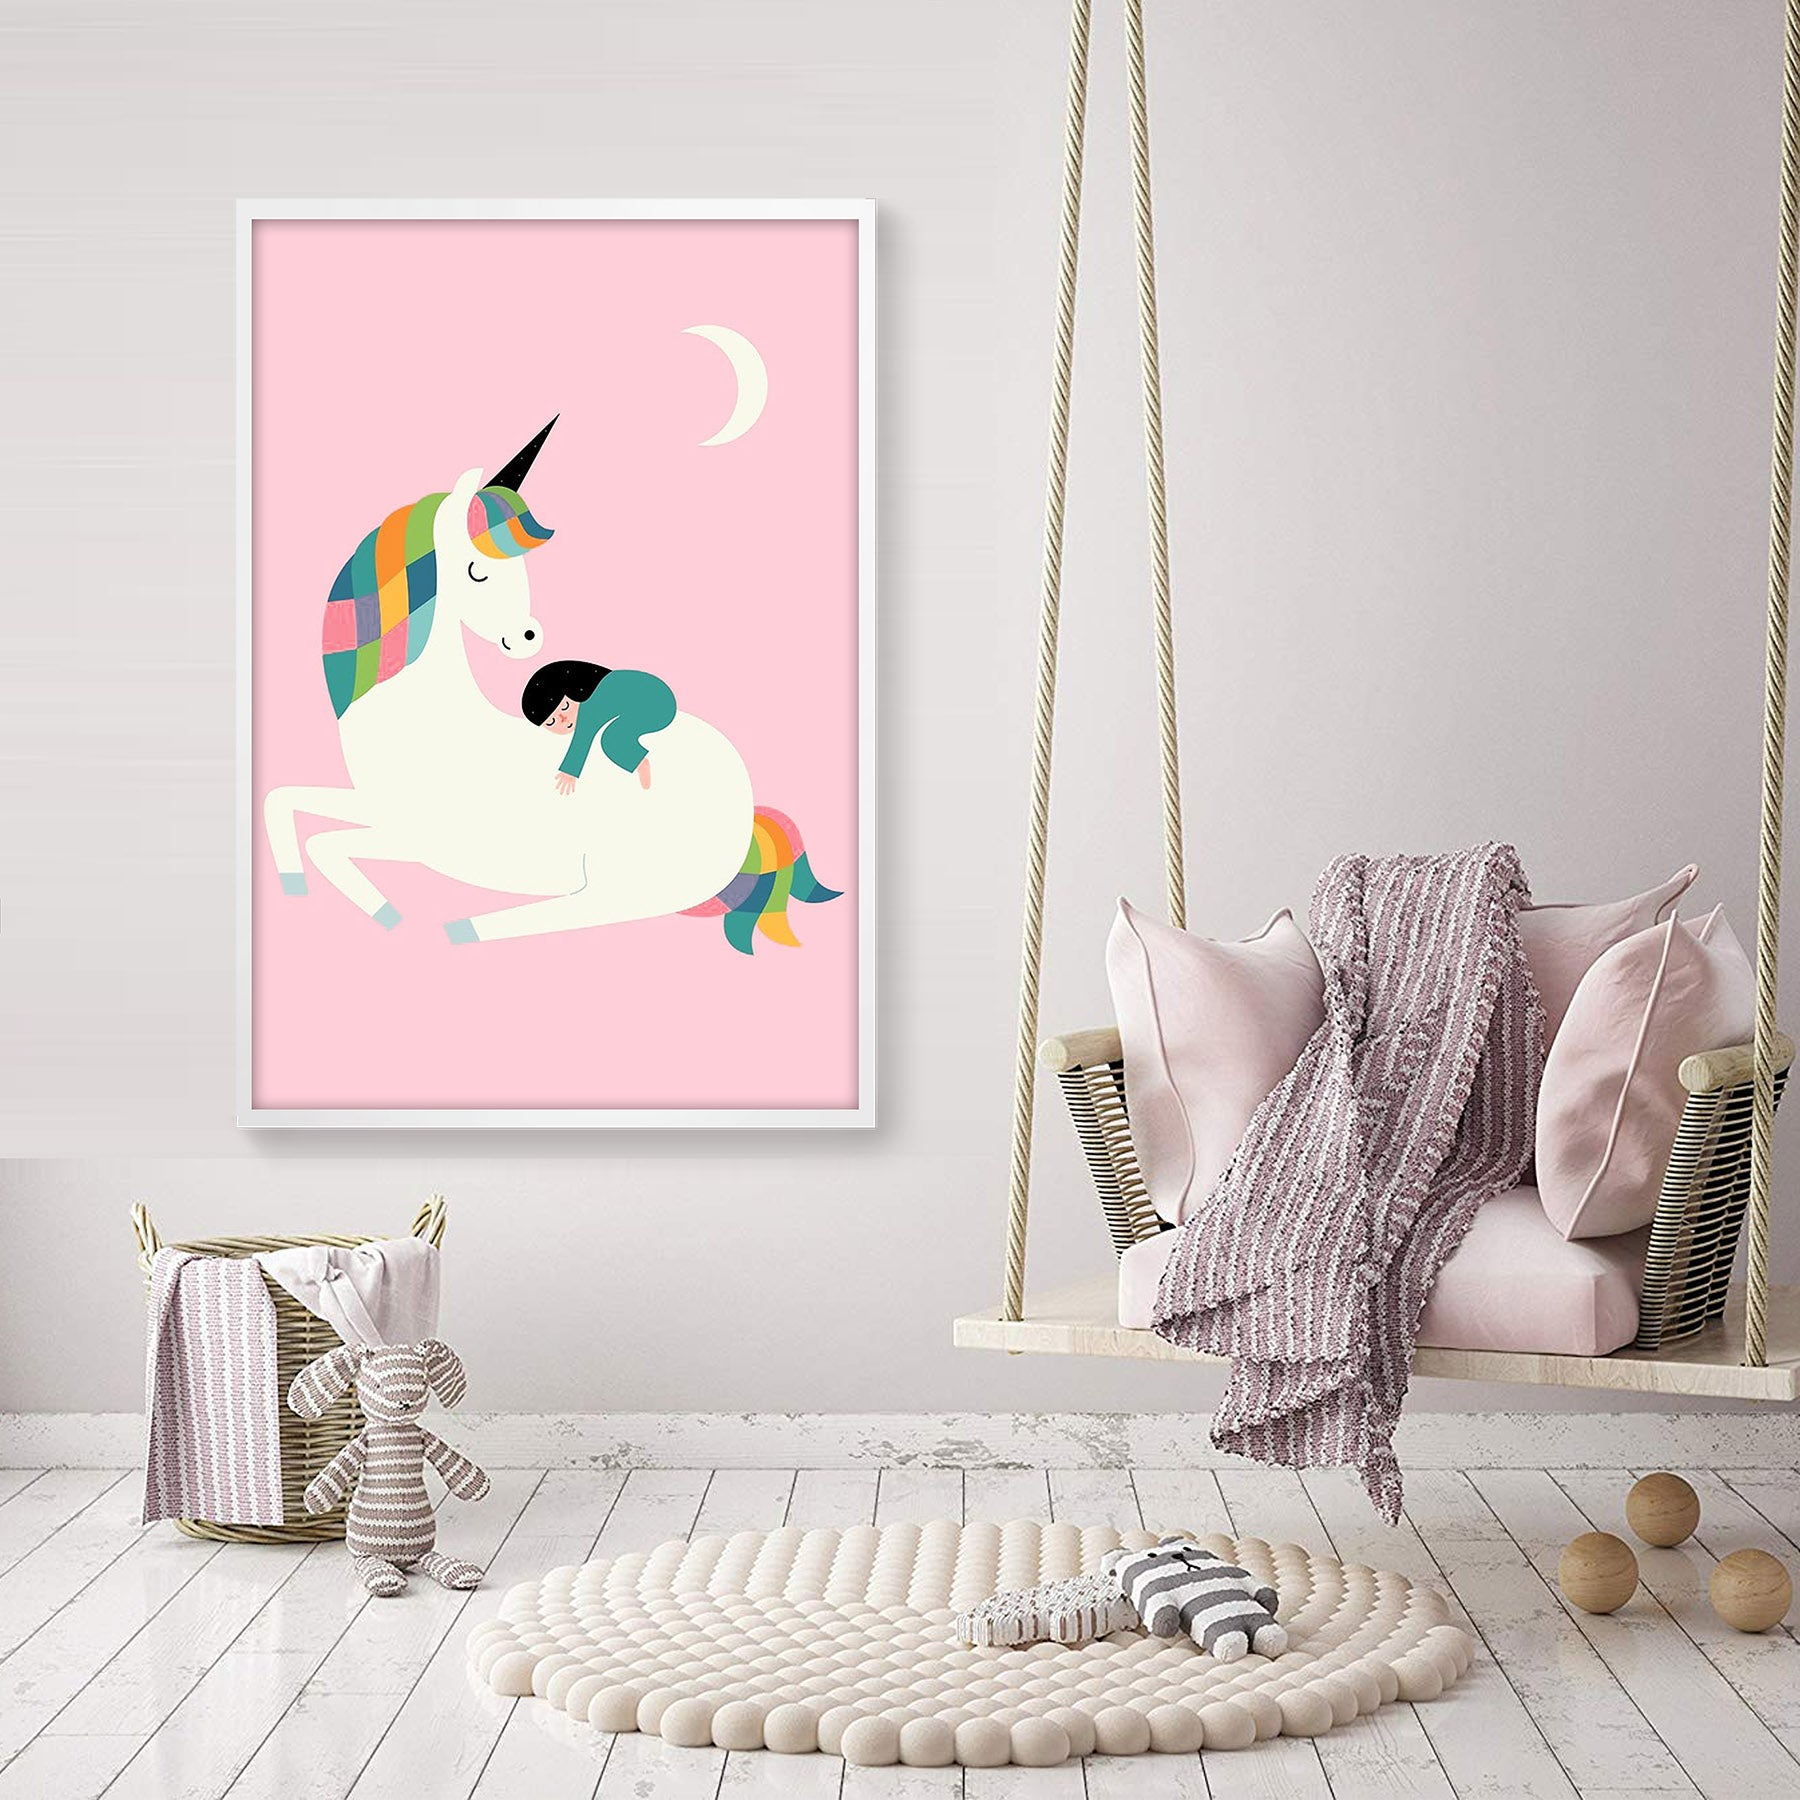 Framed Graphic Art Print  SOAPR0013 -  لوحه فنيه مطبوعه بالايطار - Shop Online Furniture and Home Decor Store in Dubai, UAE at ebarza